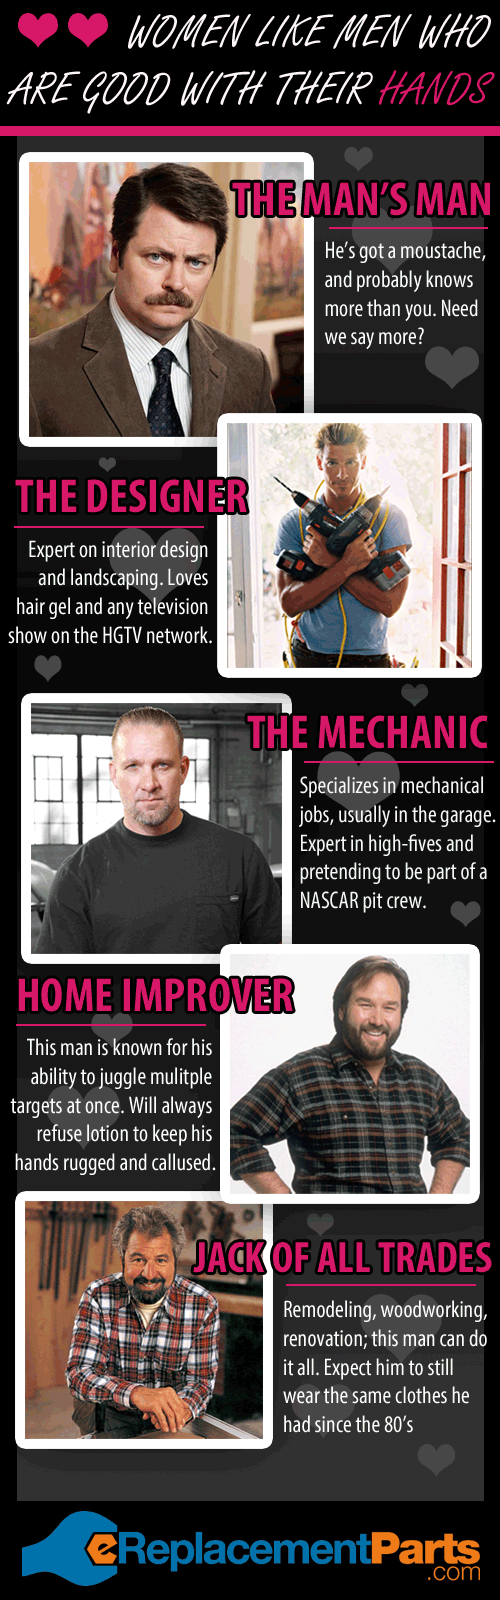 handy man infographic women